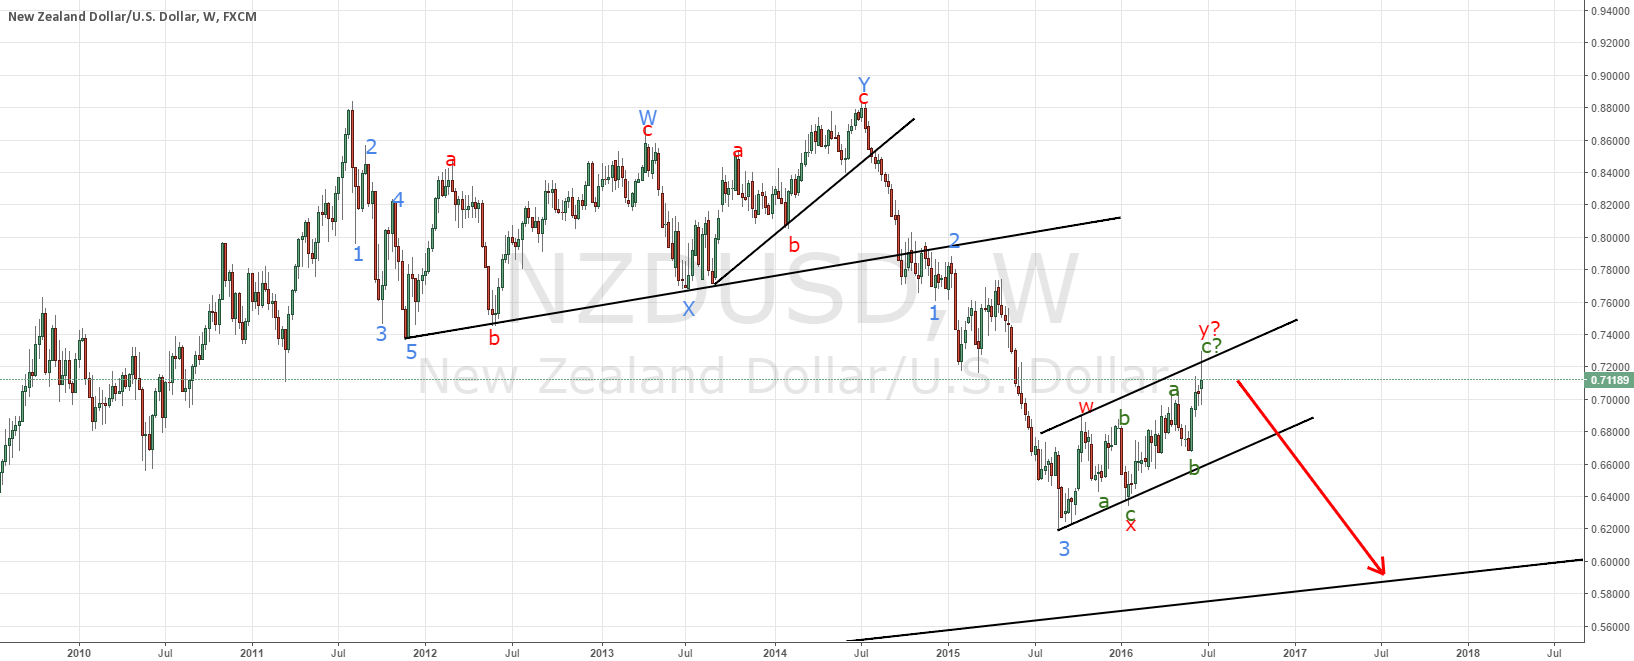 NZDUSD ending a weekly consolidation